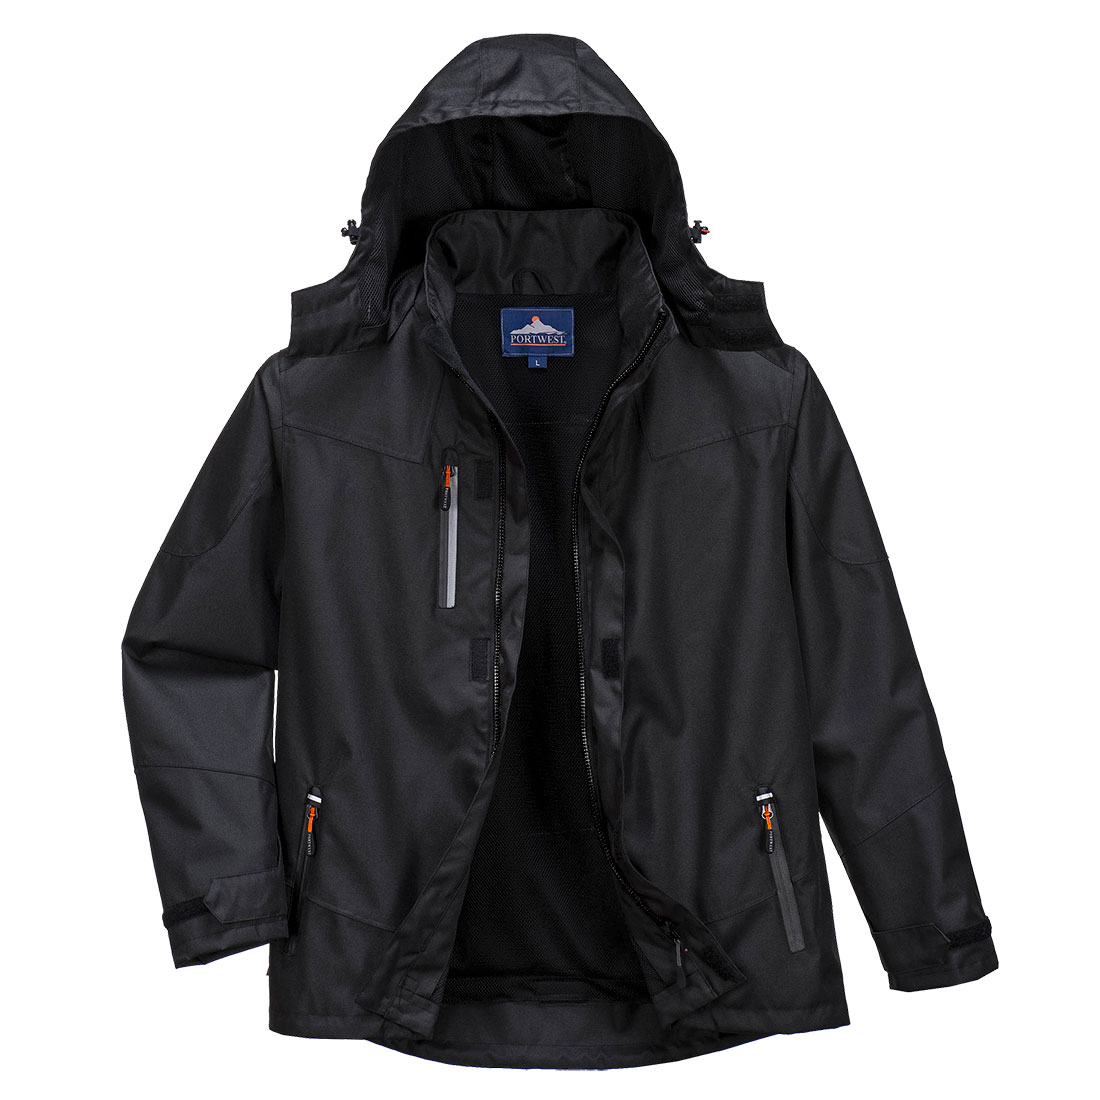 Outcoach Jacket Black 5XL